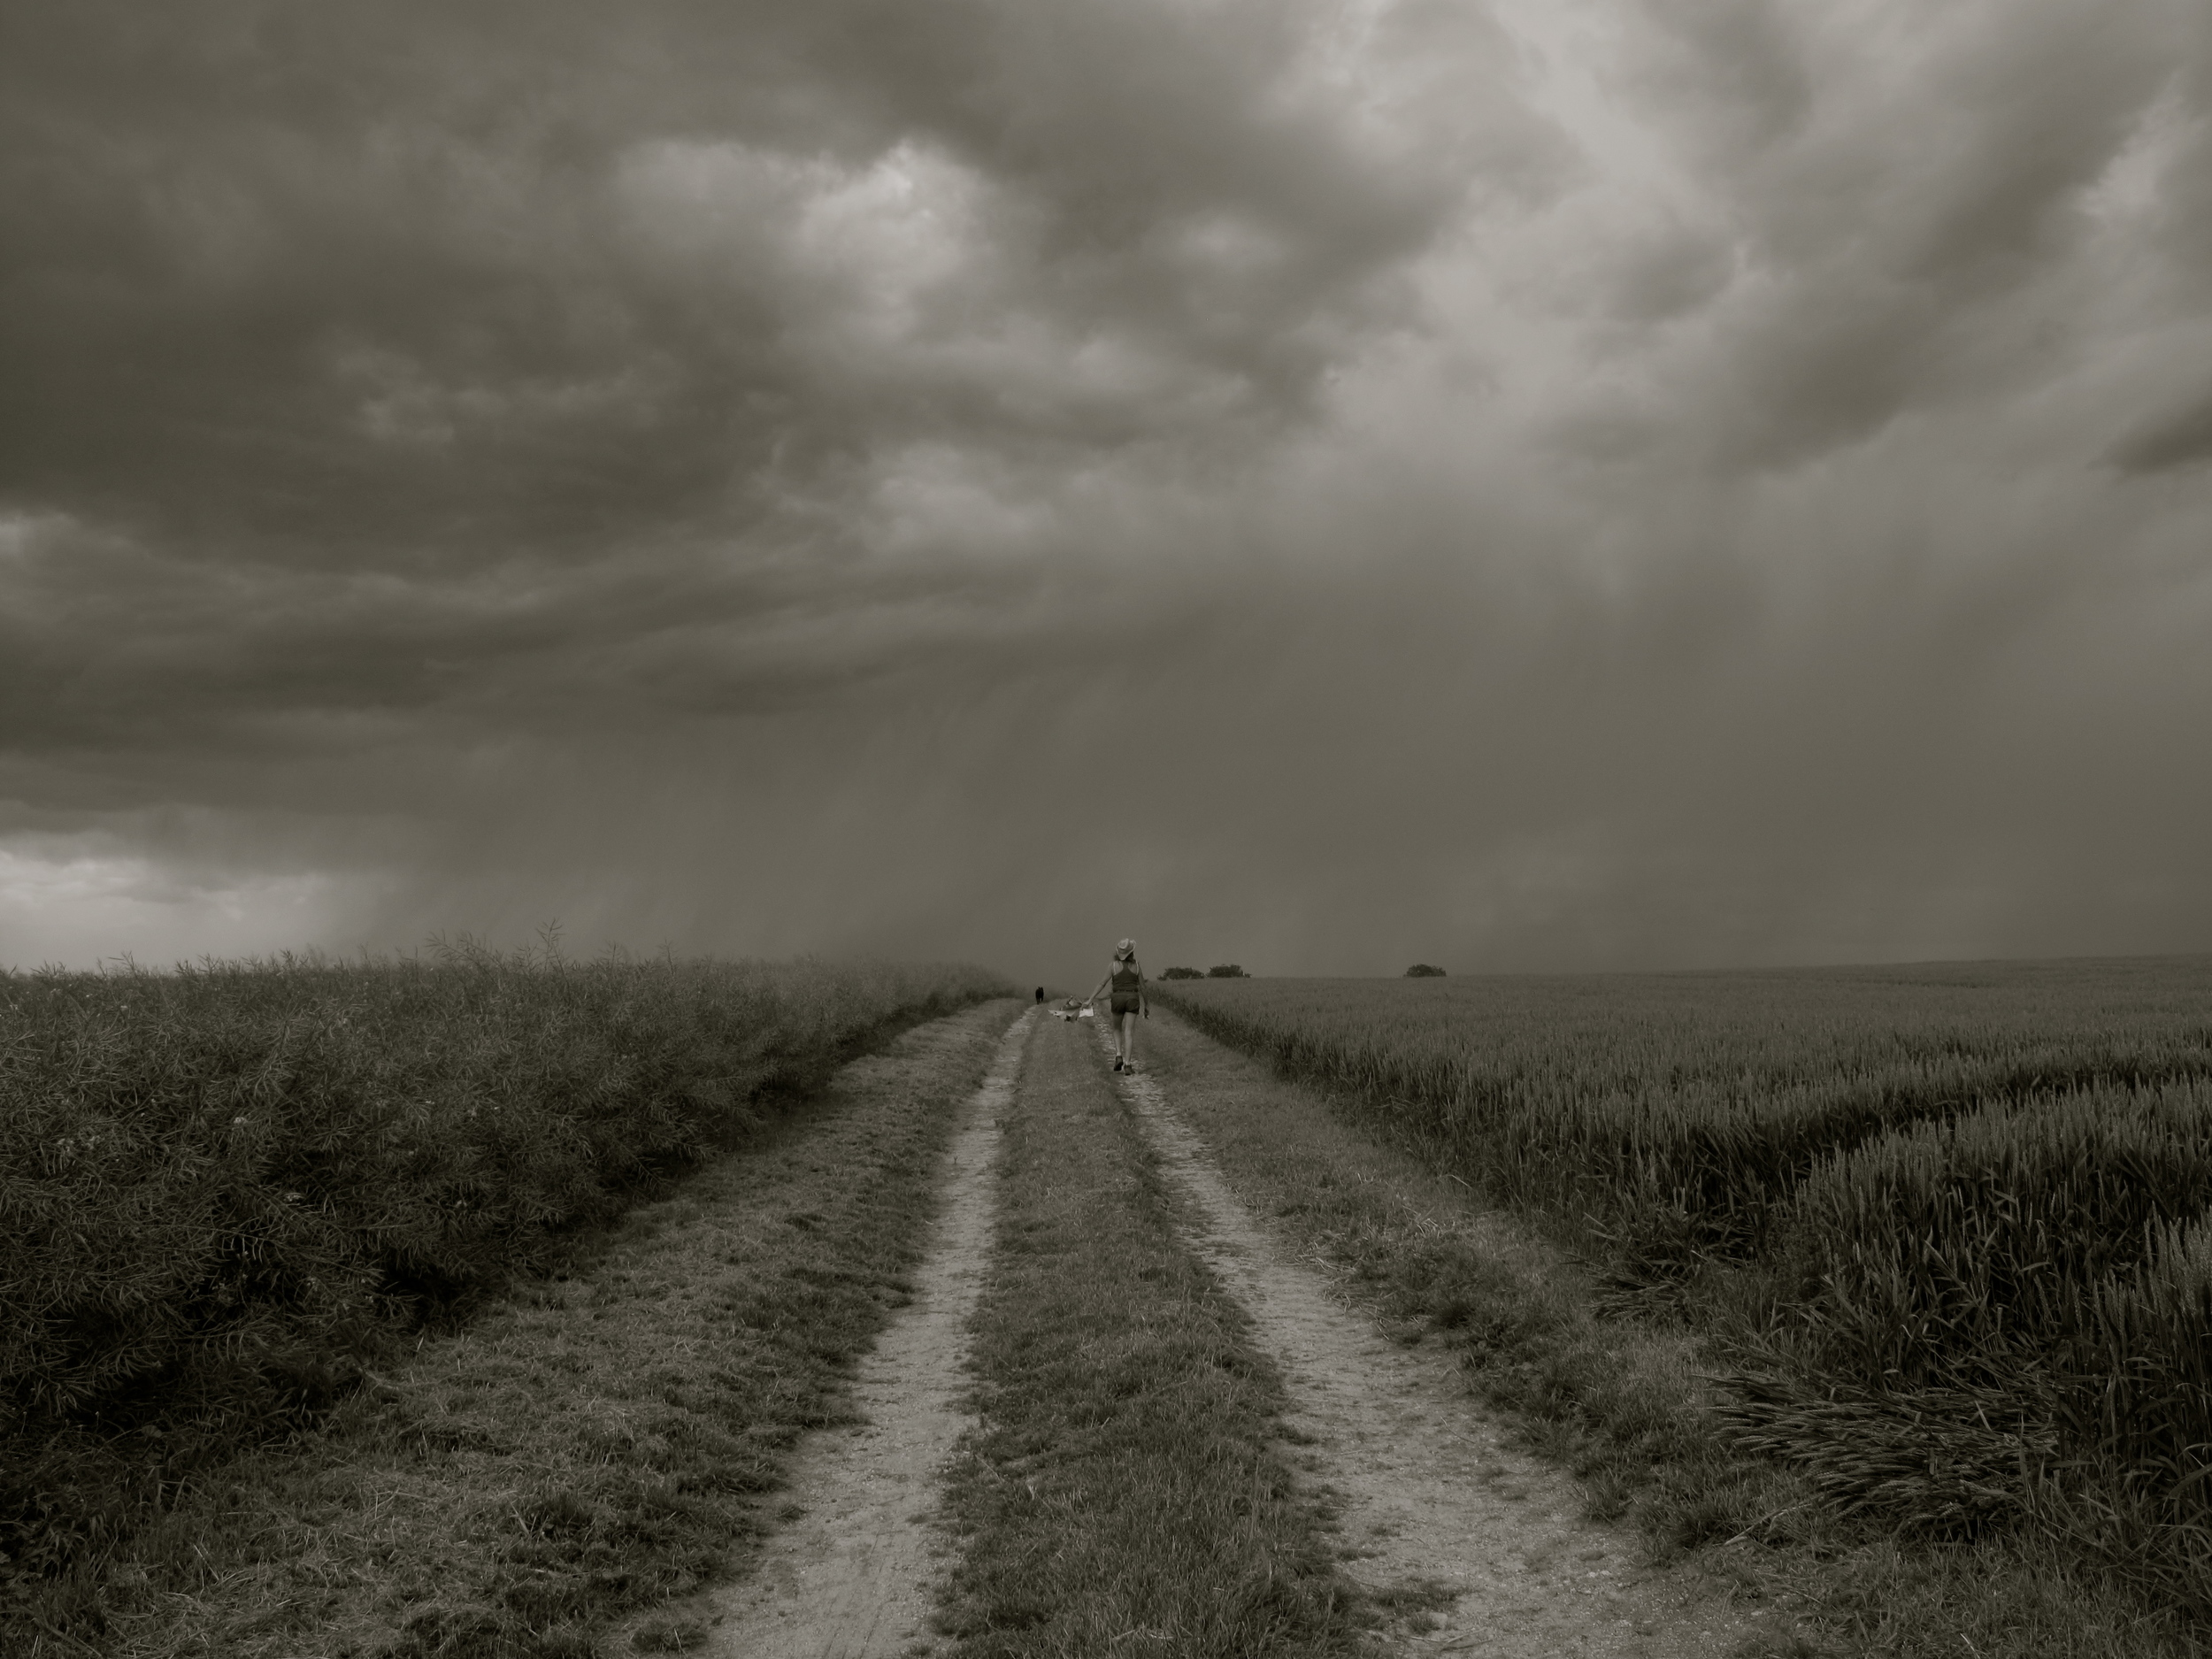 A lightning storm coming on while we are hiking through the wheat fields, Auvergne